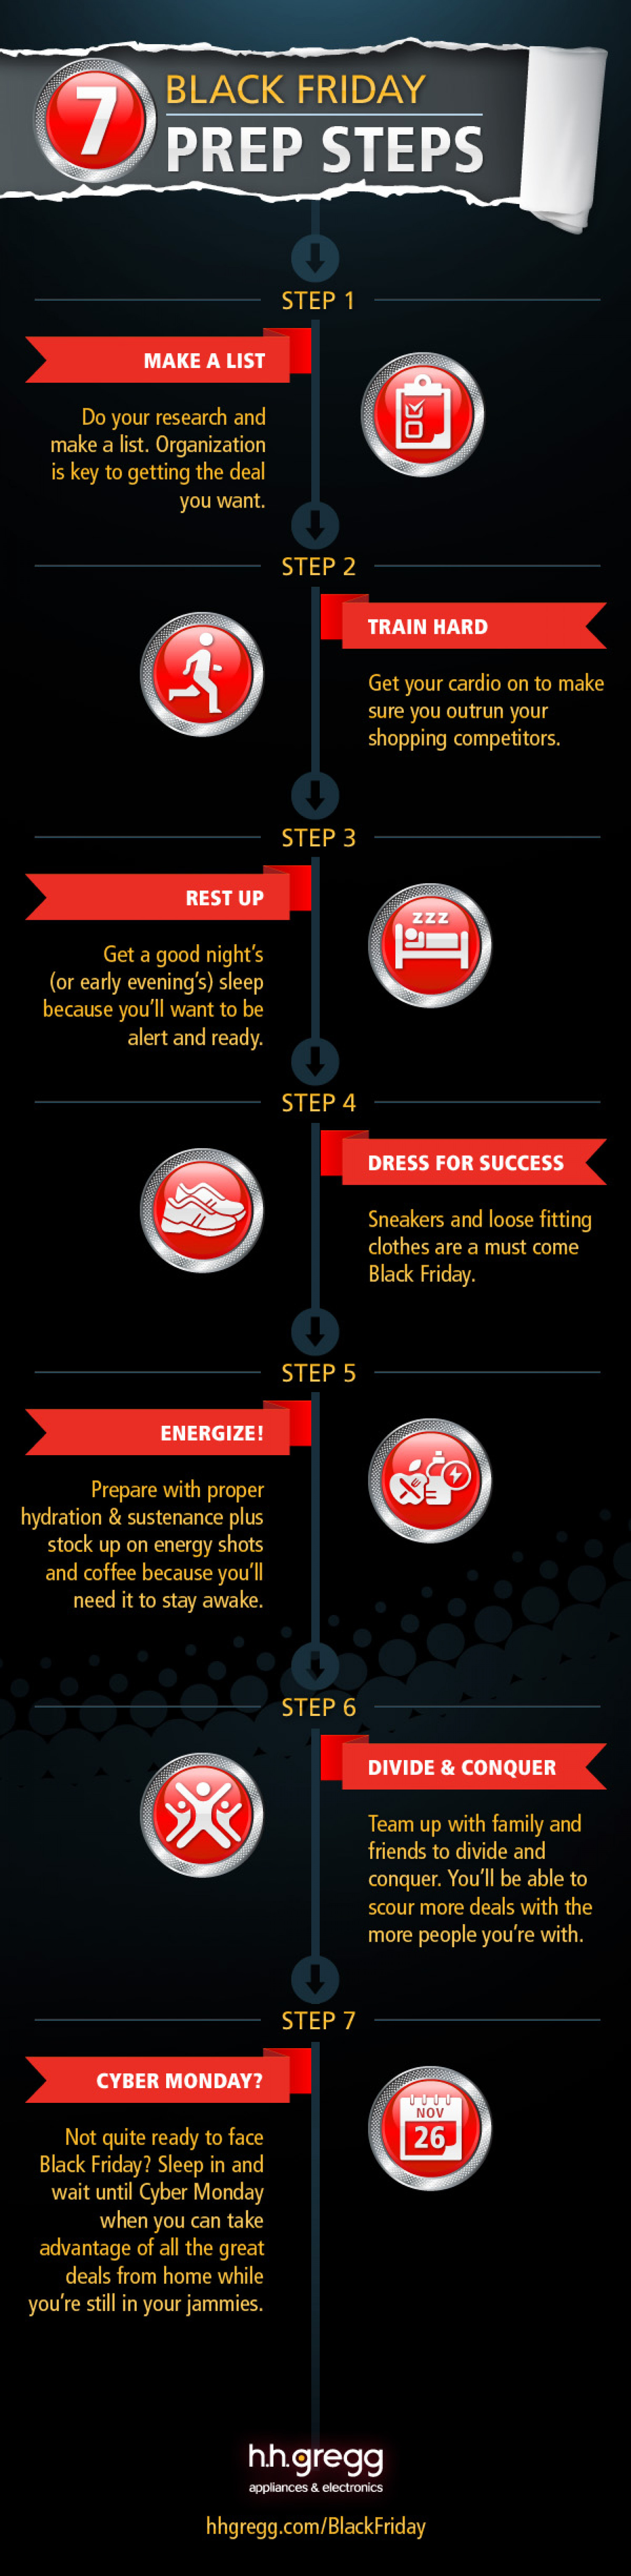 hhgregg Black Friday Instructographic Infographic